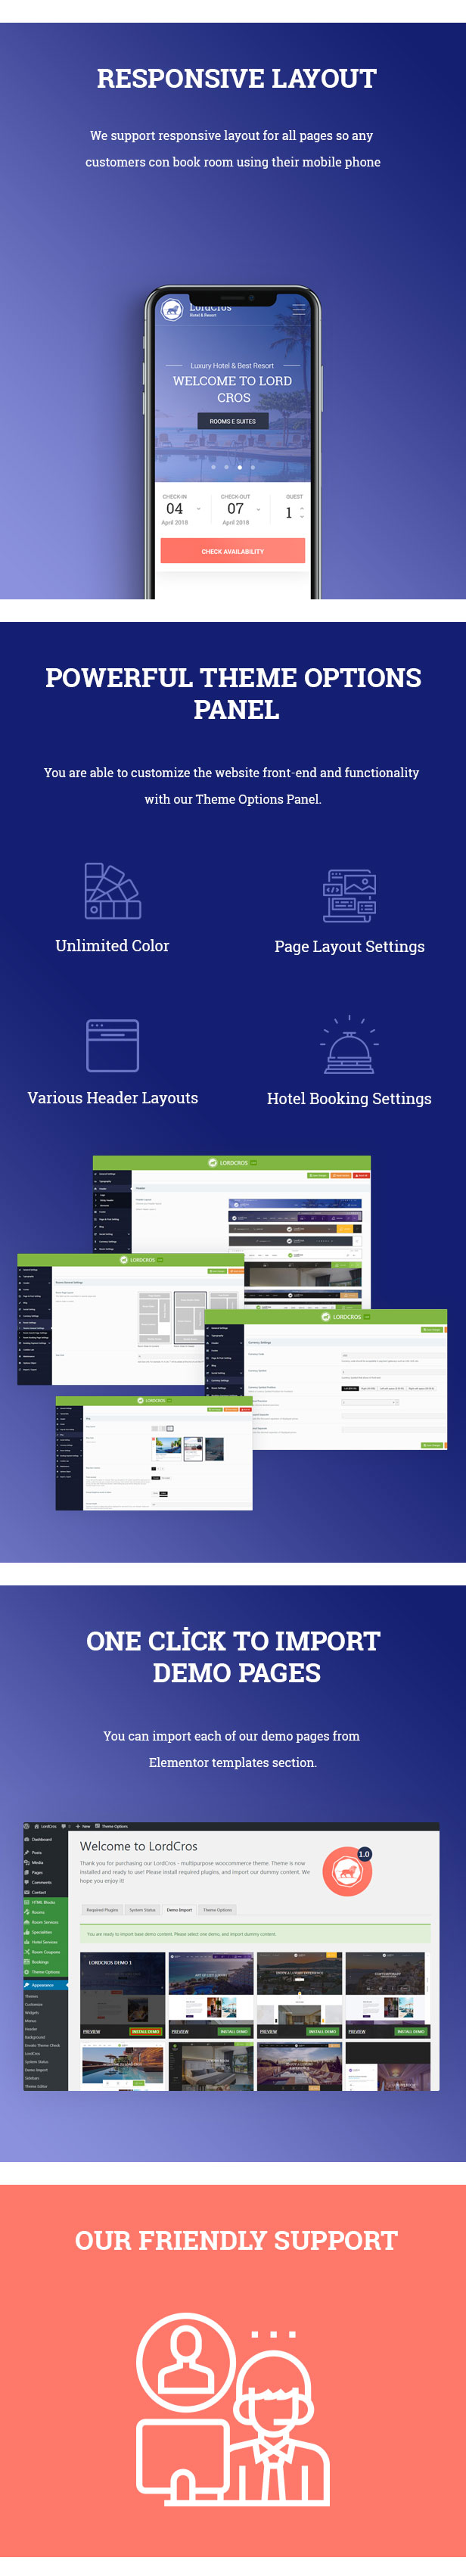 LordCros - Hotel Booking WordPress Theme - 8